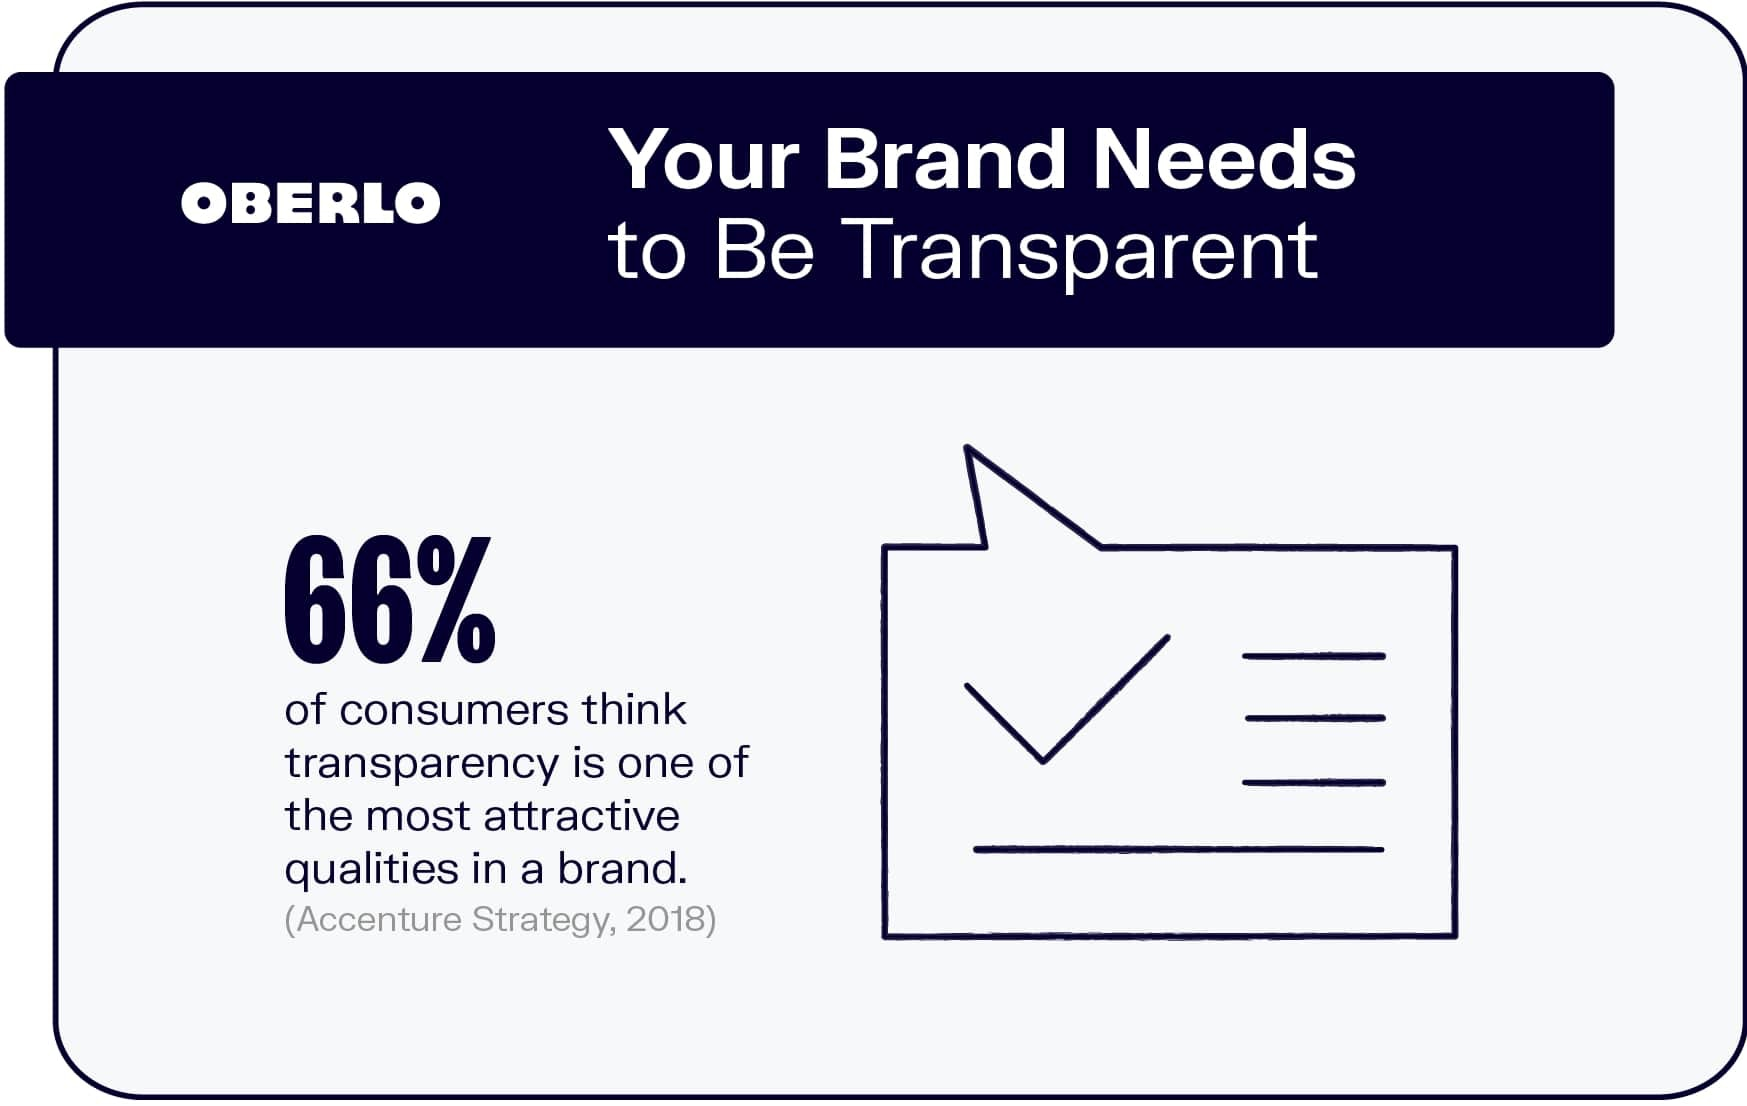 Your Brand Needs to Be Transparent